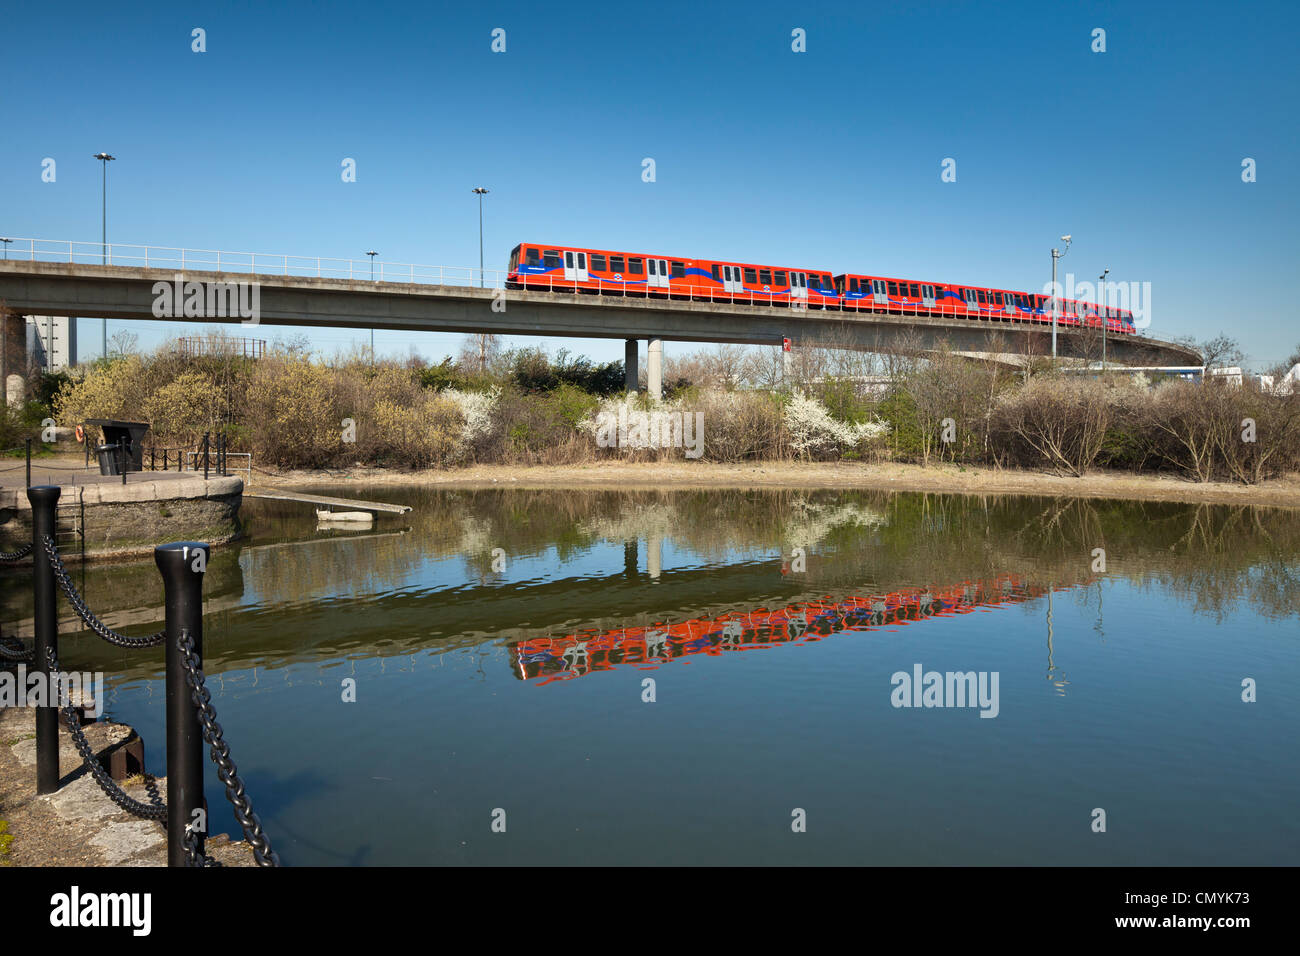 Docklands Light railway train reflected in East India Dock basin. - Stock Image